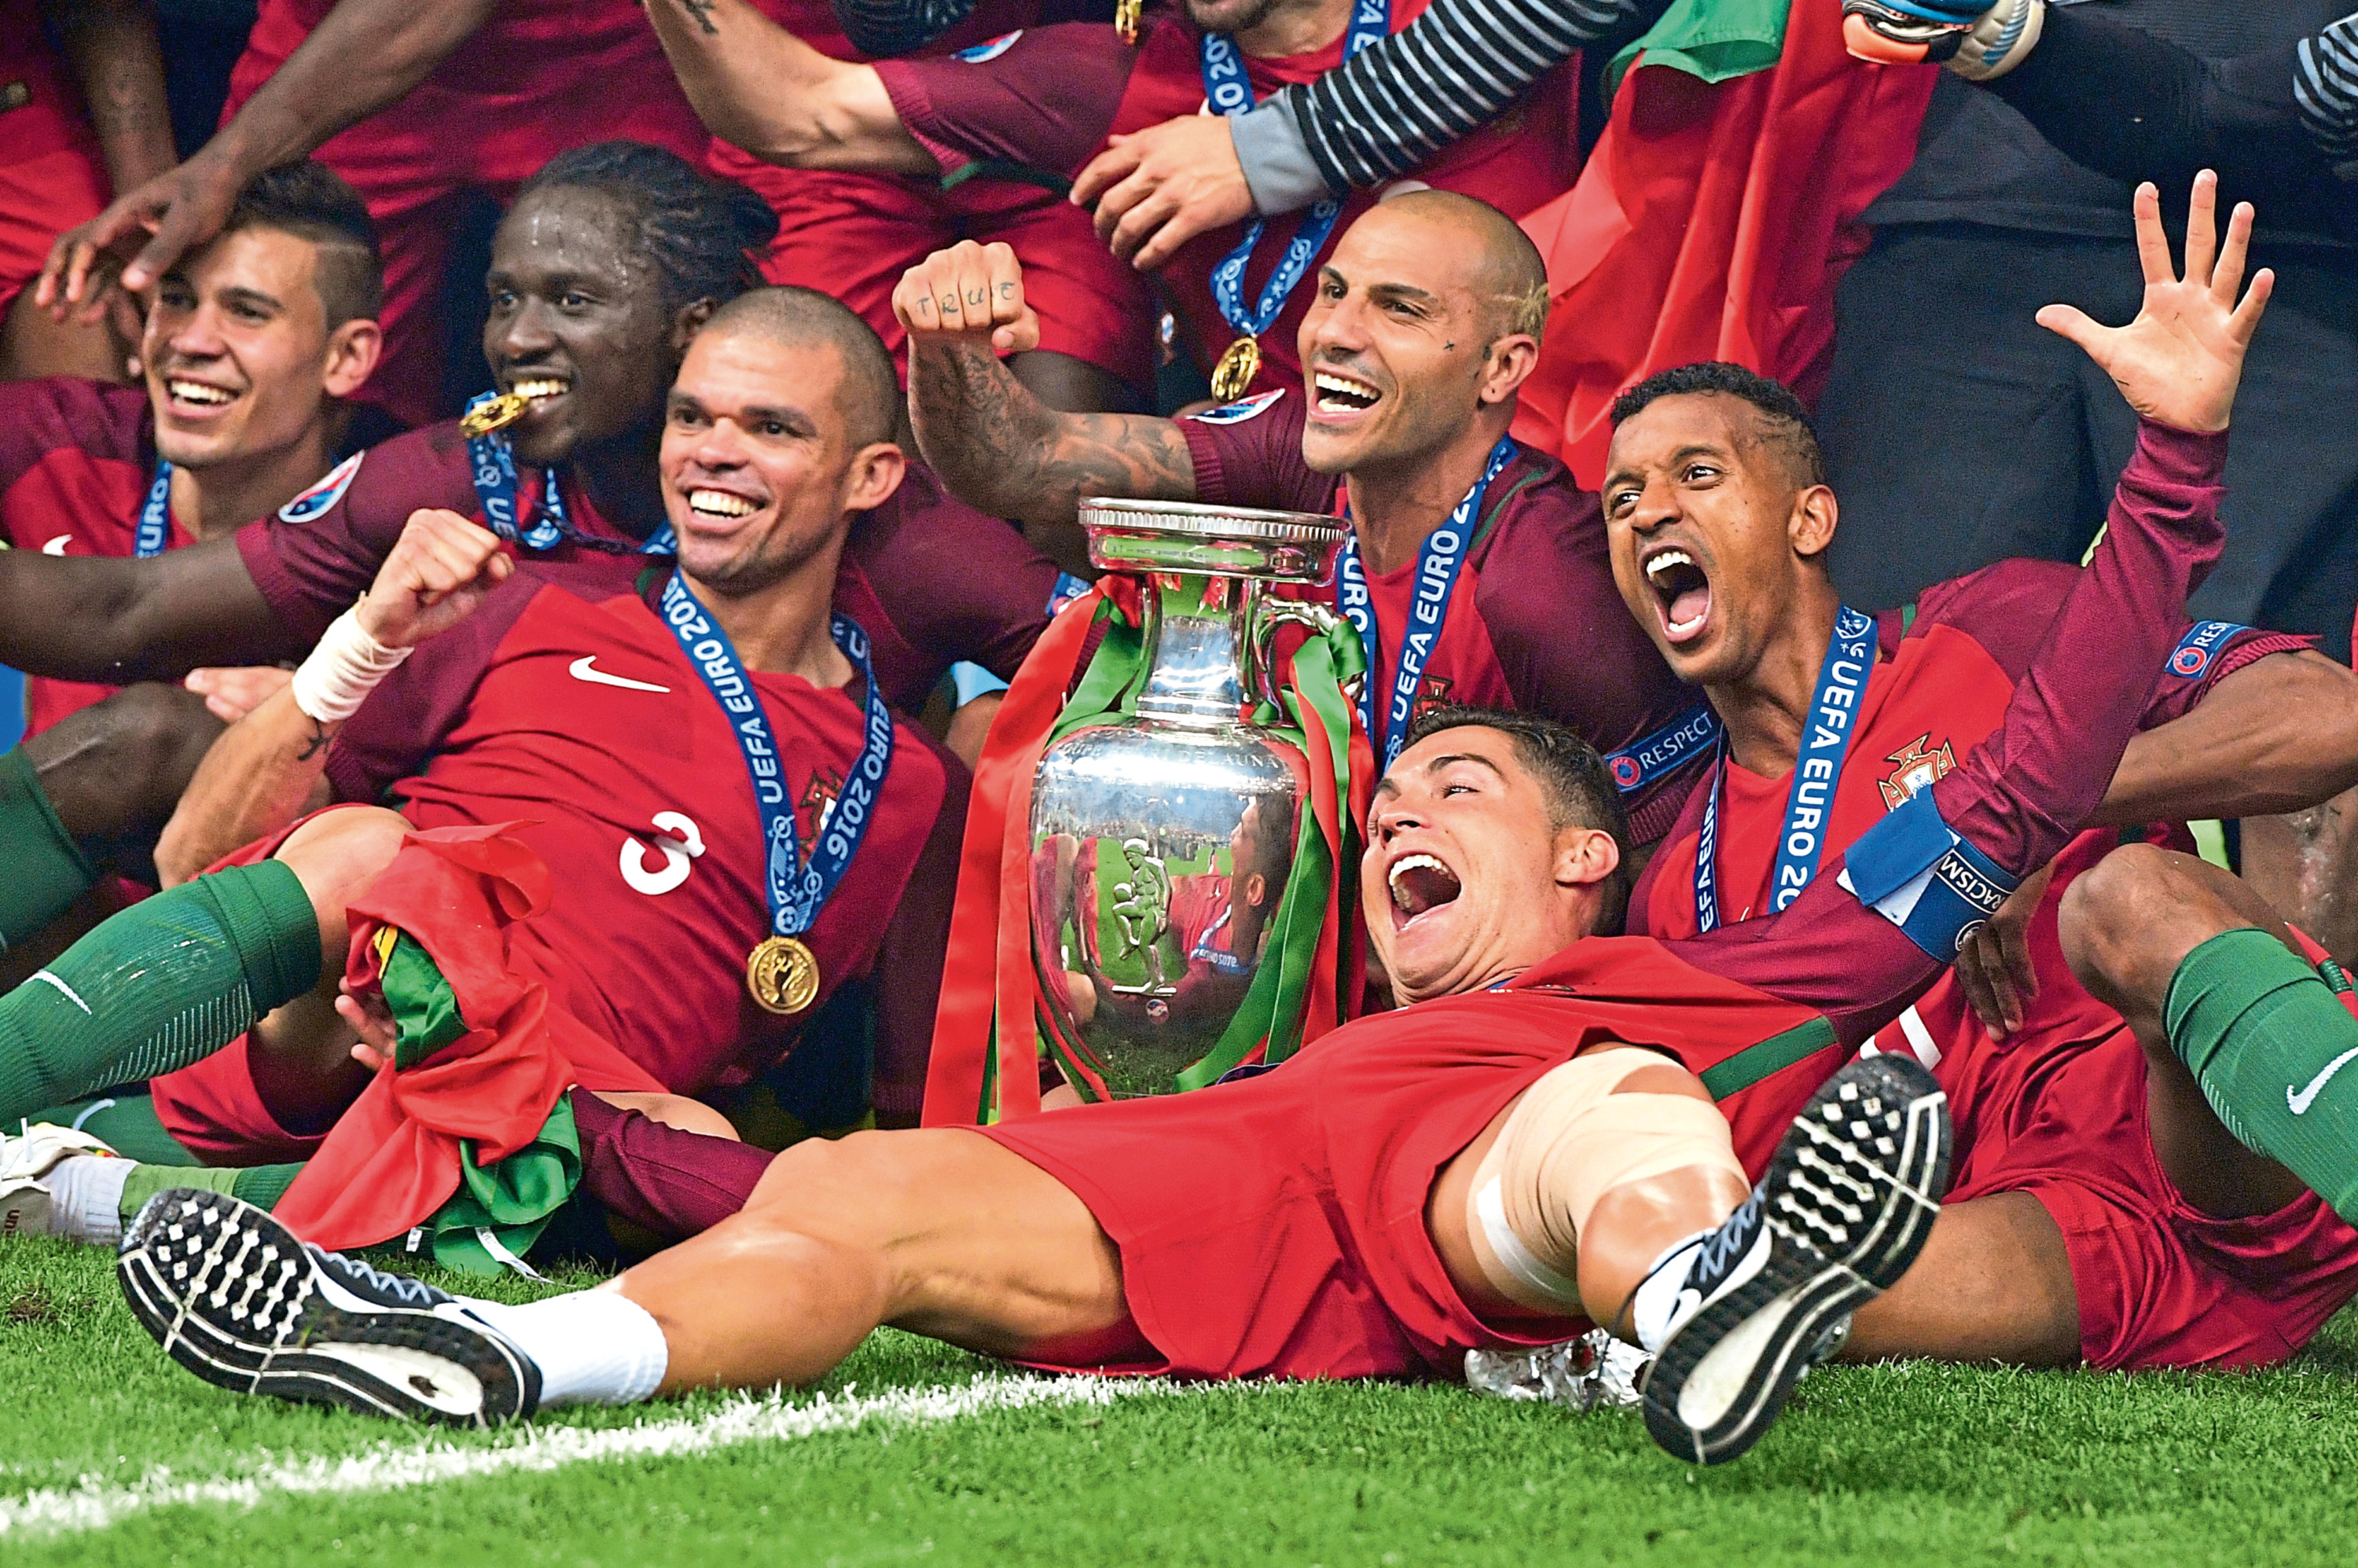 The Portugal team with the trophy in 2016